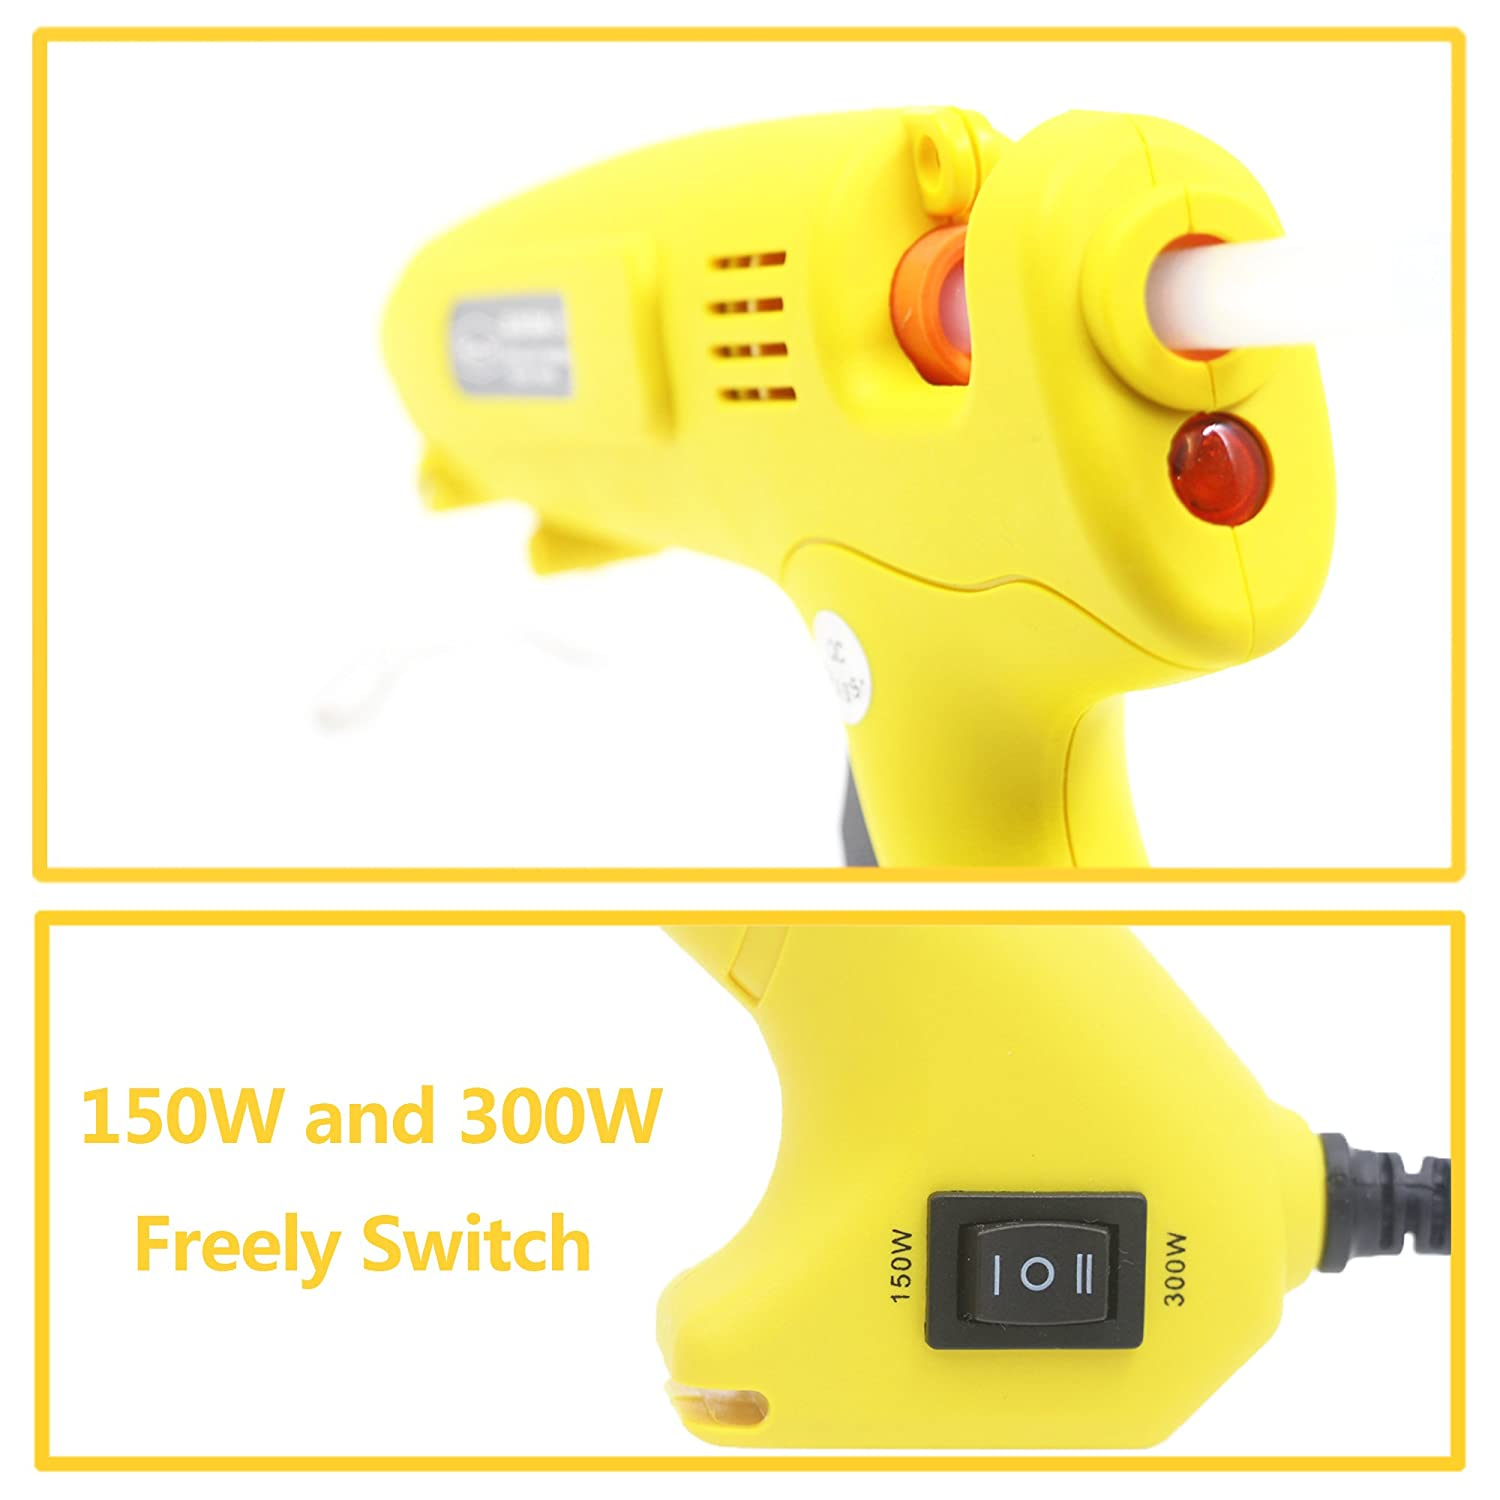 Power Tools Back To Search Resultstools Charitable Electrican 40w-150w Adjustable Diy Hot Melt Glue Gun 11mm Adhesive Stick Heater Craft Metal Wood Working Decoration Tool Diy Factory Direct Selling Price